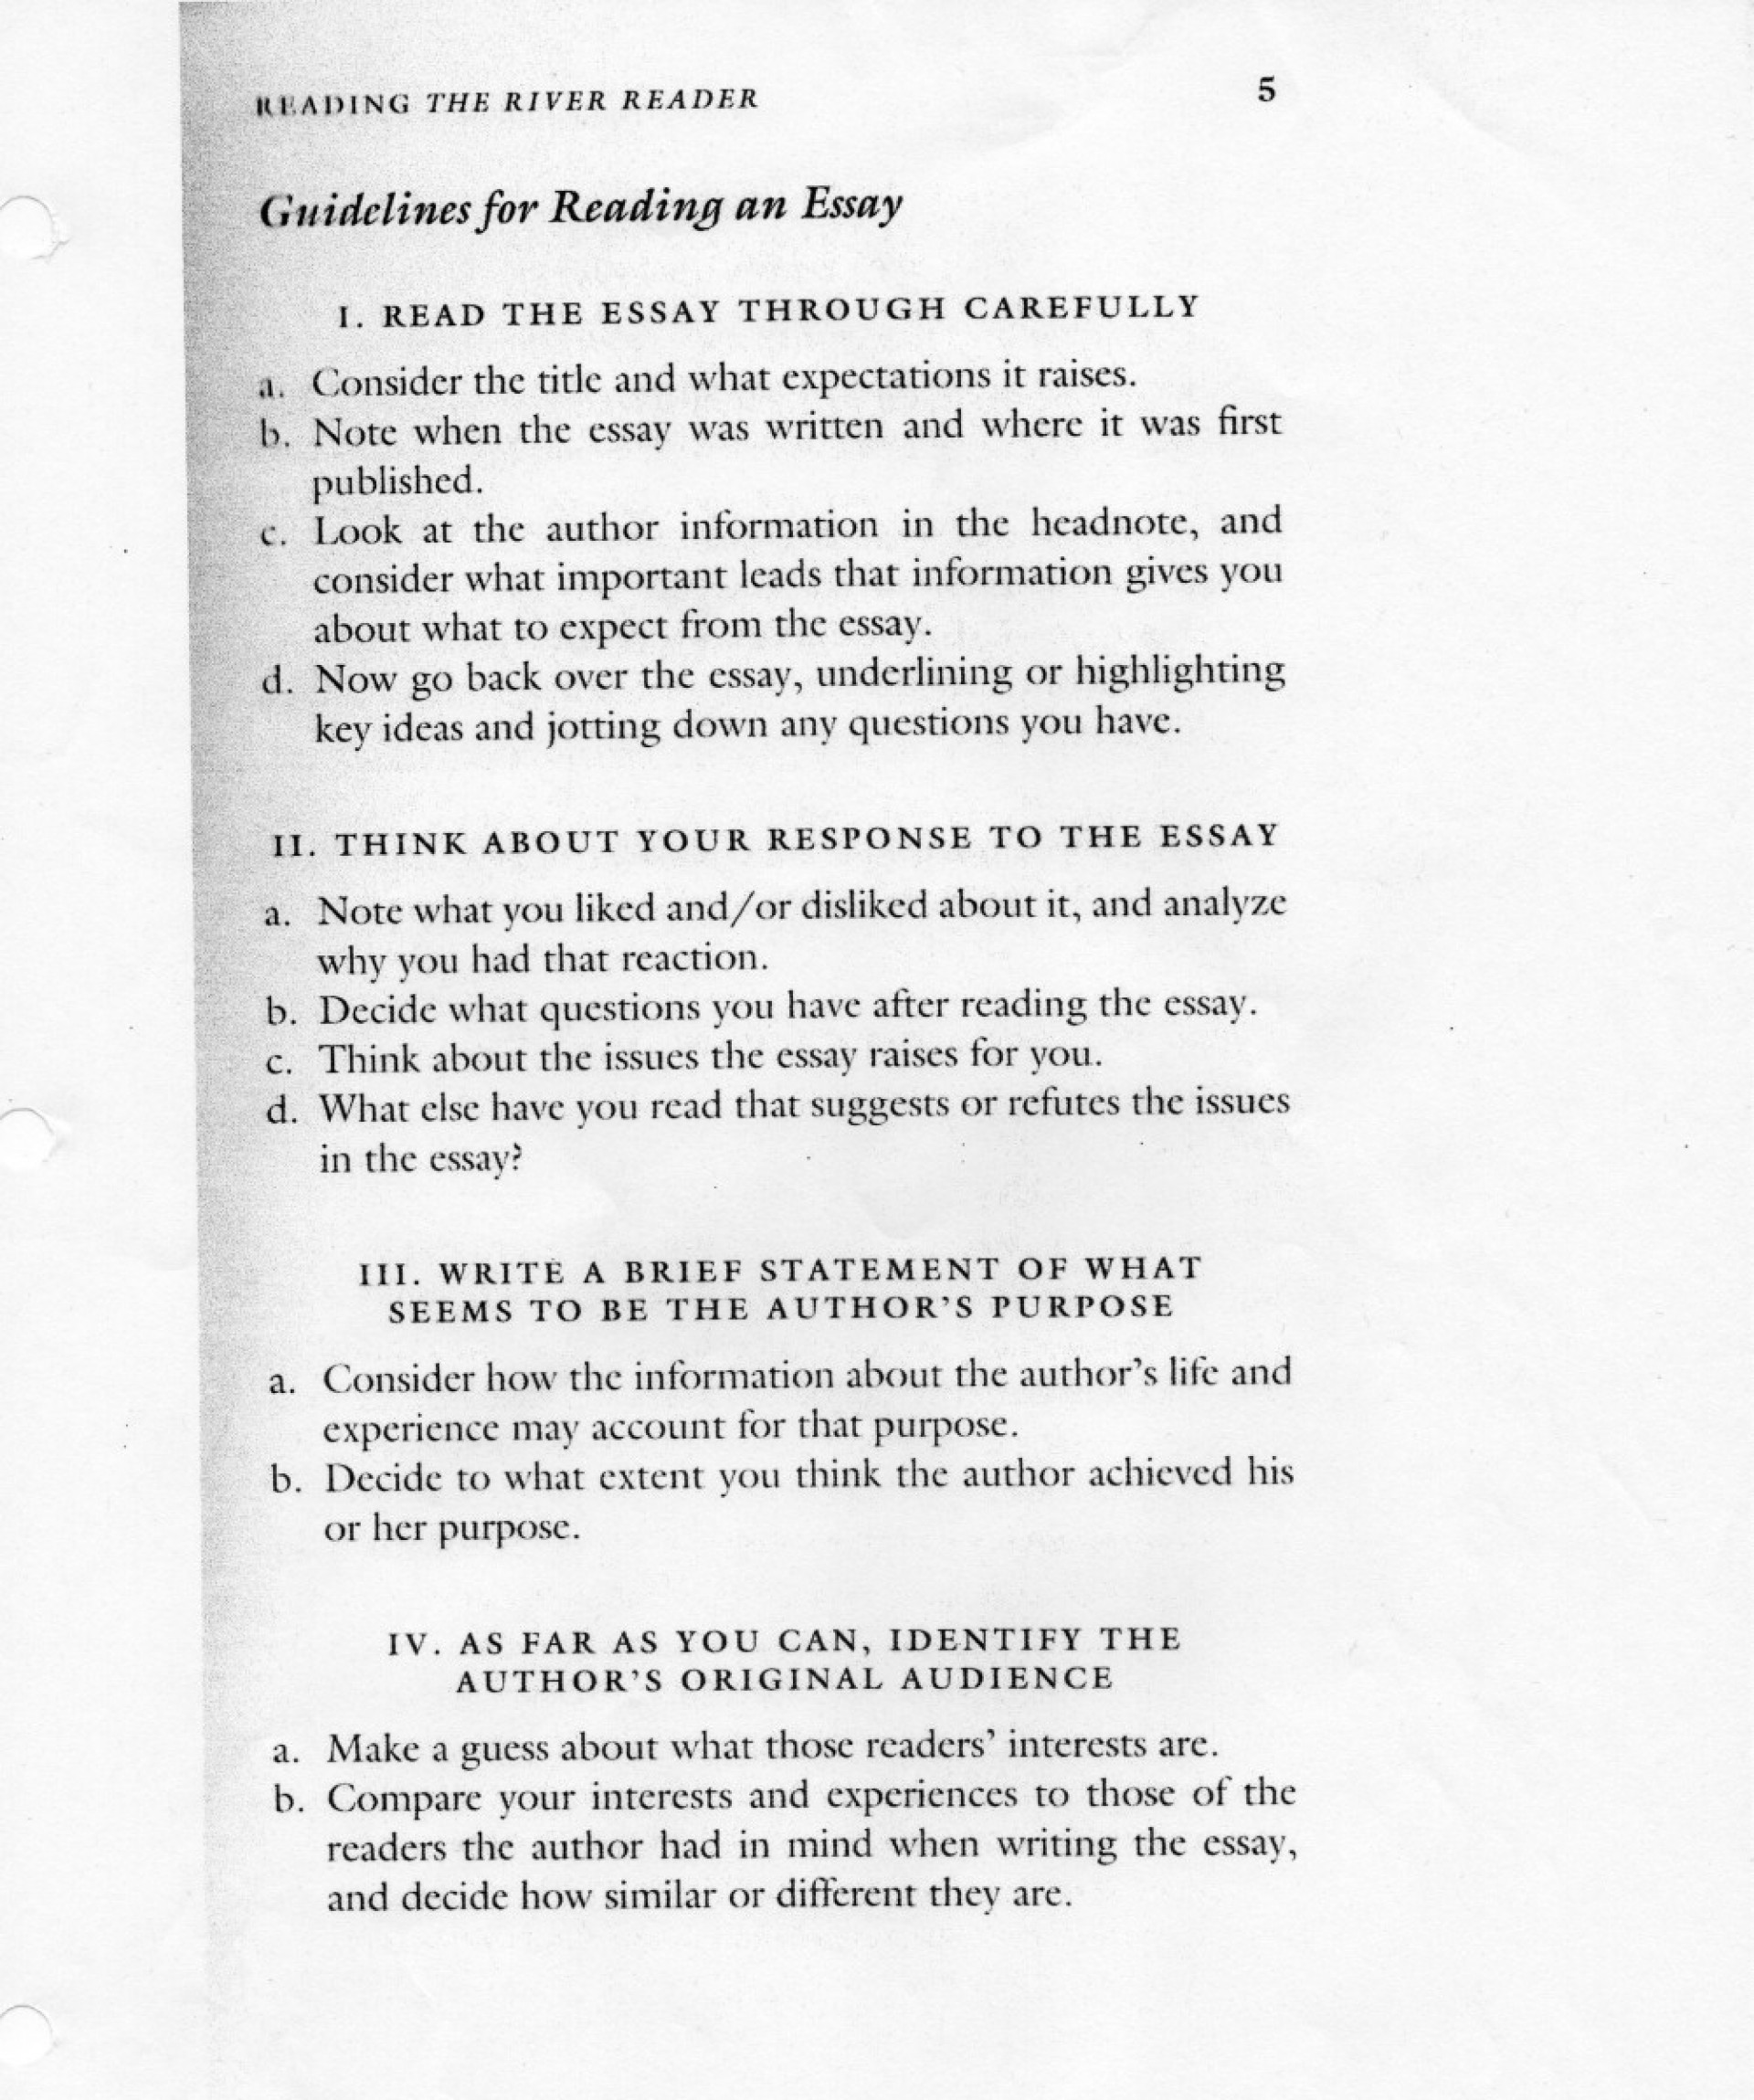 009 Essay Example Guidelines For Reading An Two Kinds By Amy Unbelievable Tan Conclusion Thesis Topics 1920